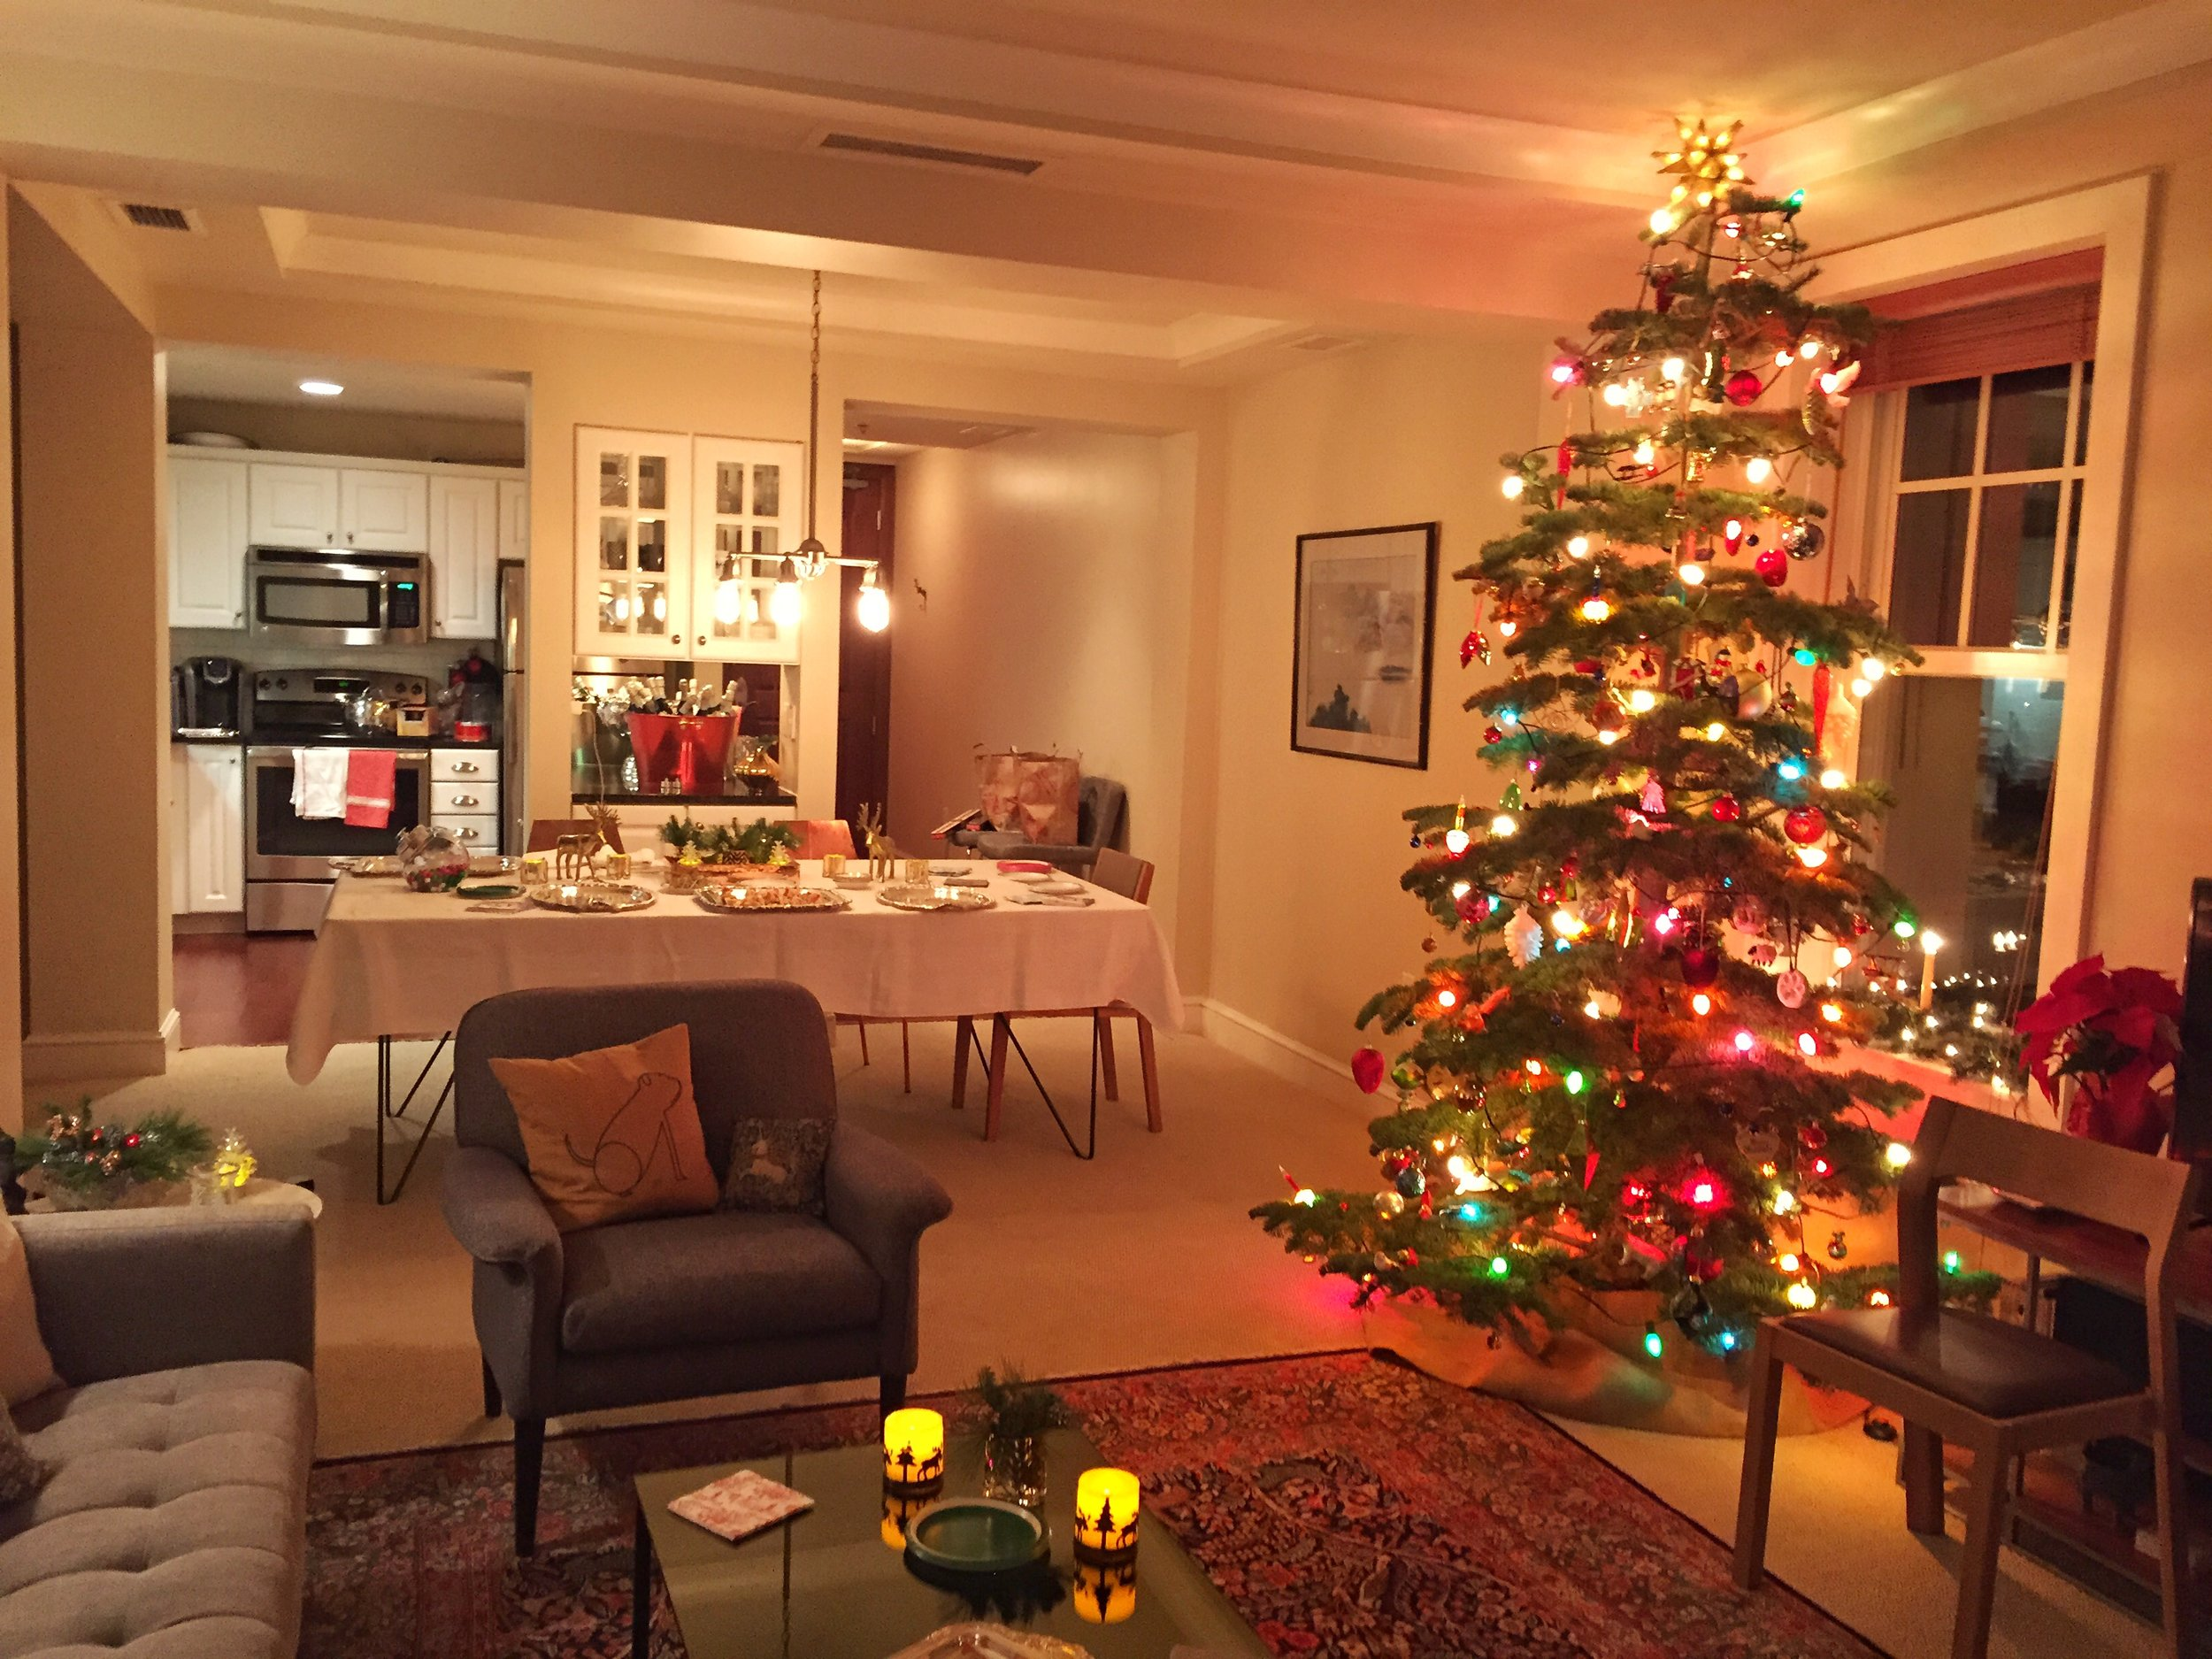 Our Holiday Party in 2016 in our apartment in Minneapolis, Minnesota.